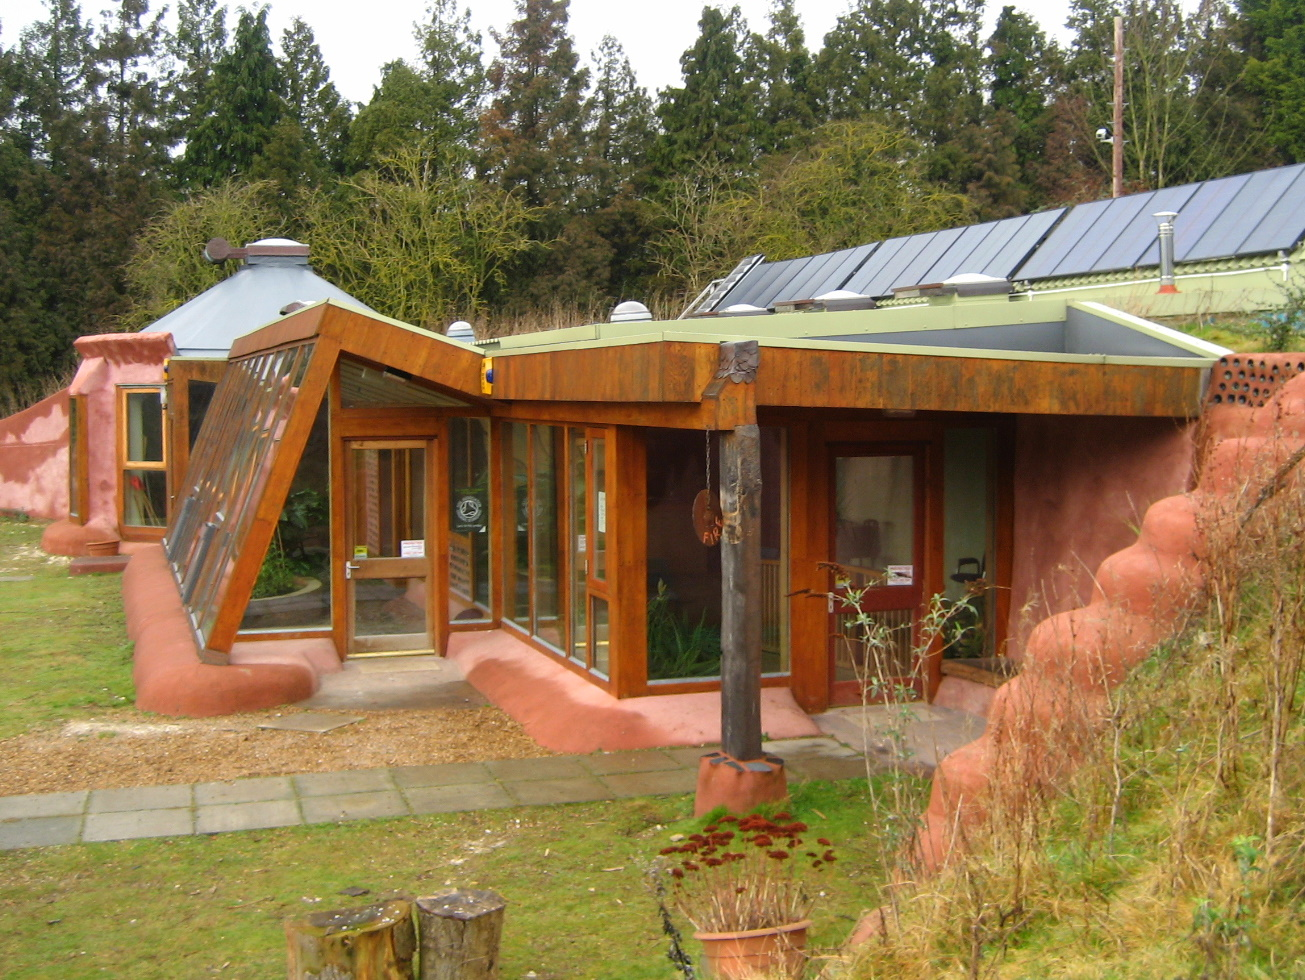 Earthship wikidwelling for In ground home designs